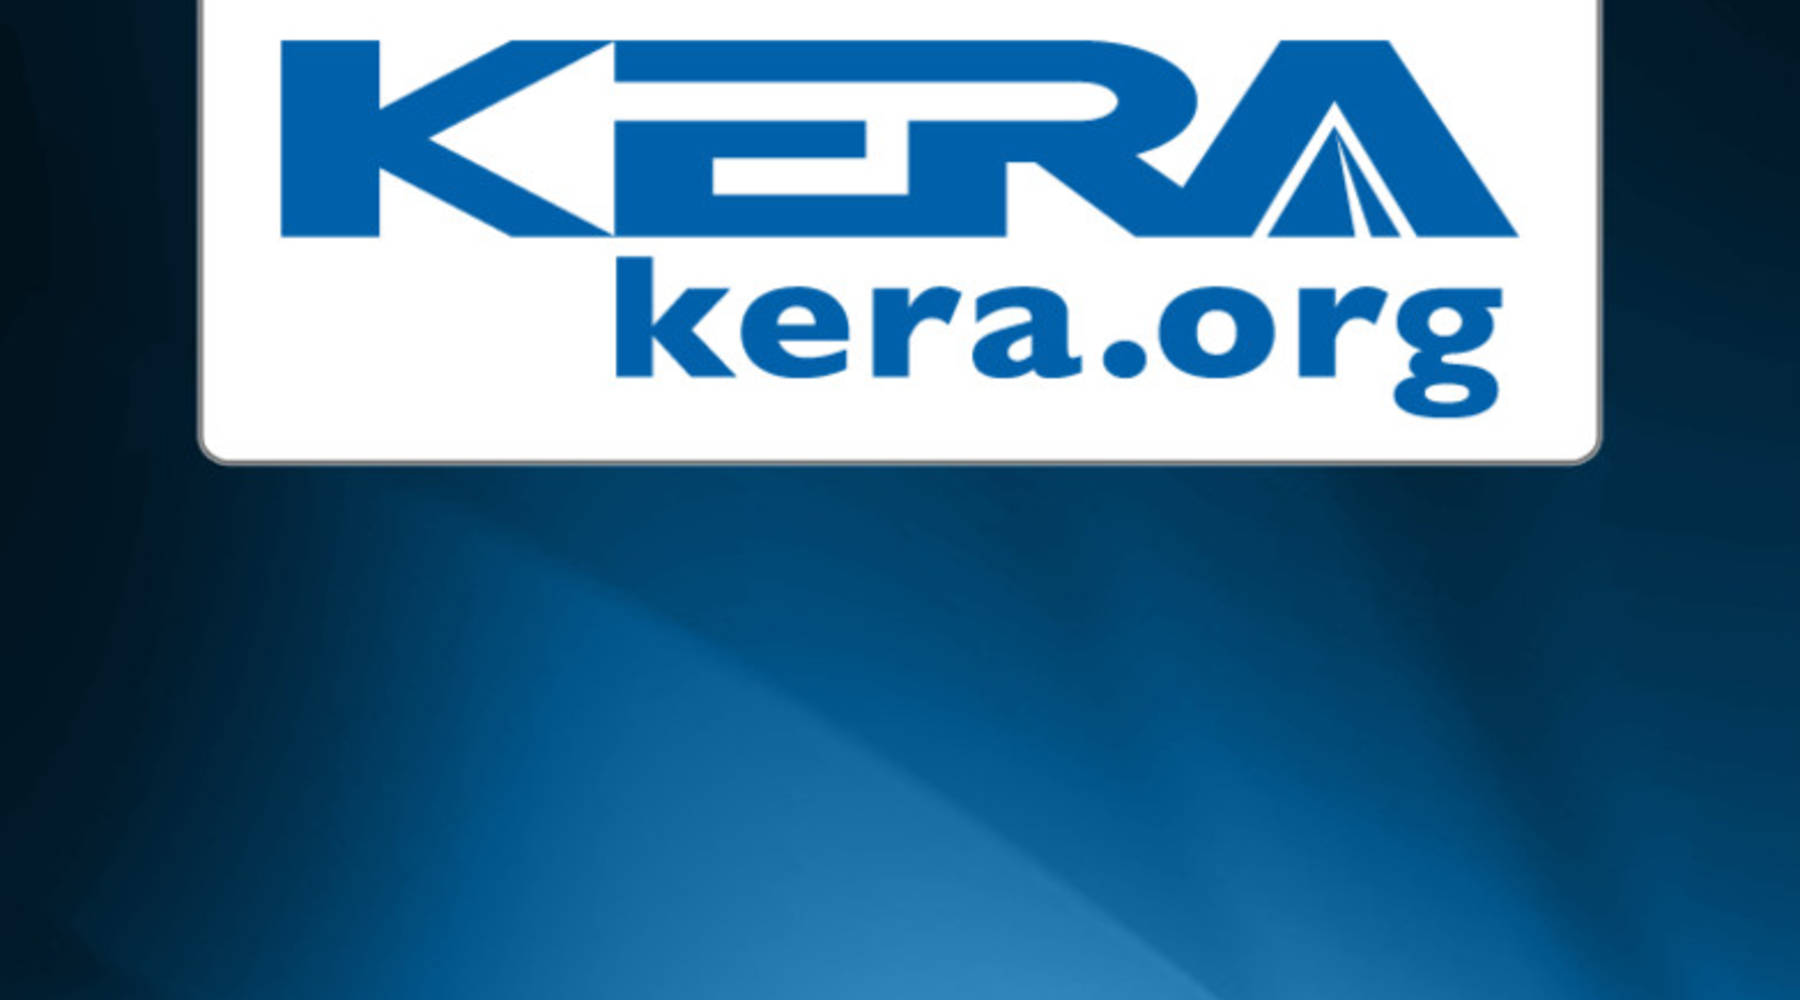 Marketplace Live from KERA in Dallas - Marketplace